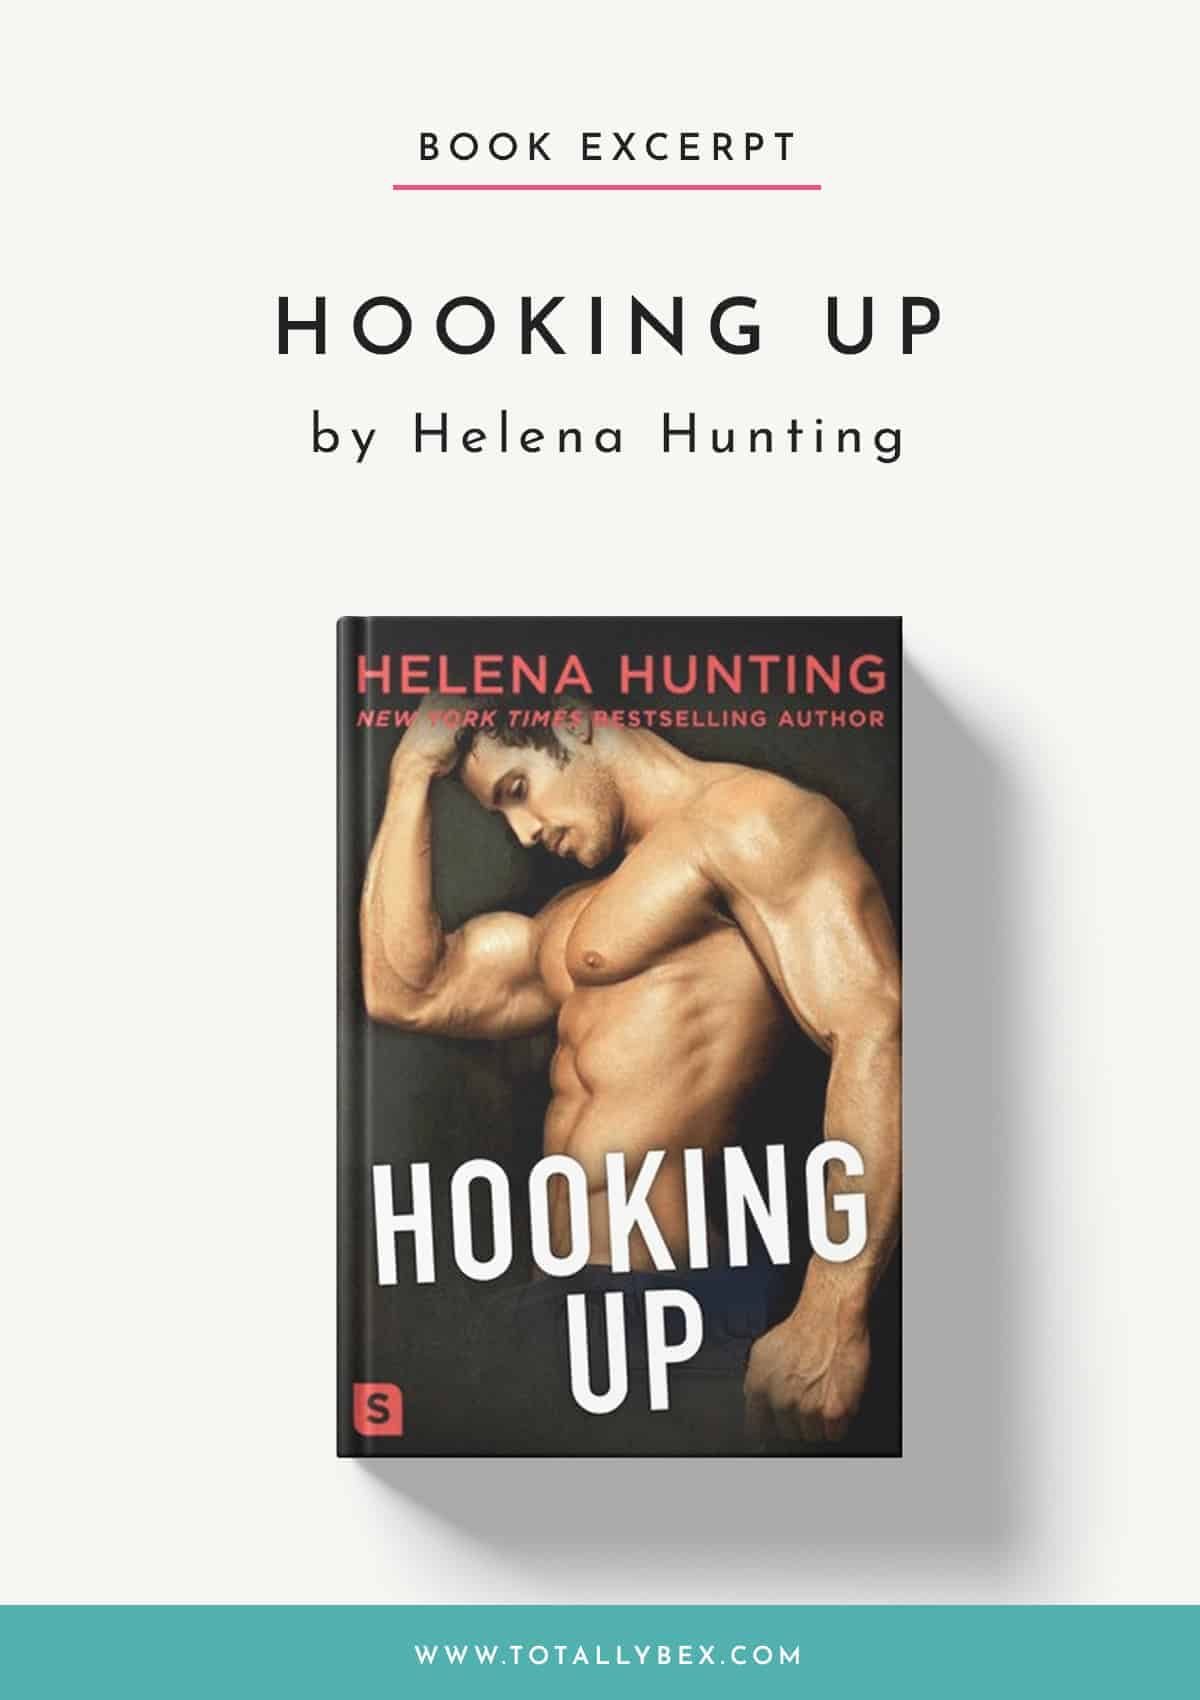 Hooking Up by Helena Hunting-Book Excerpt